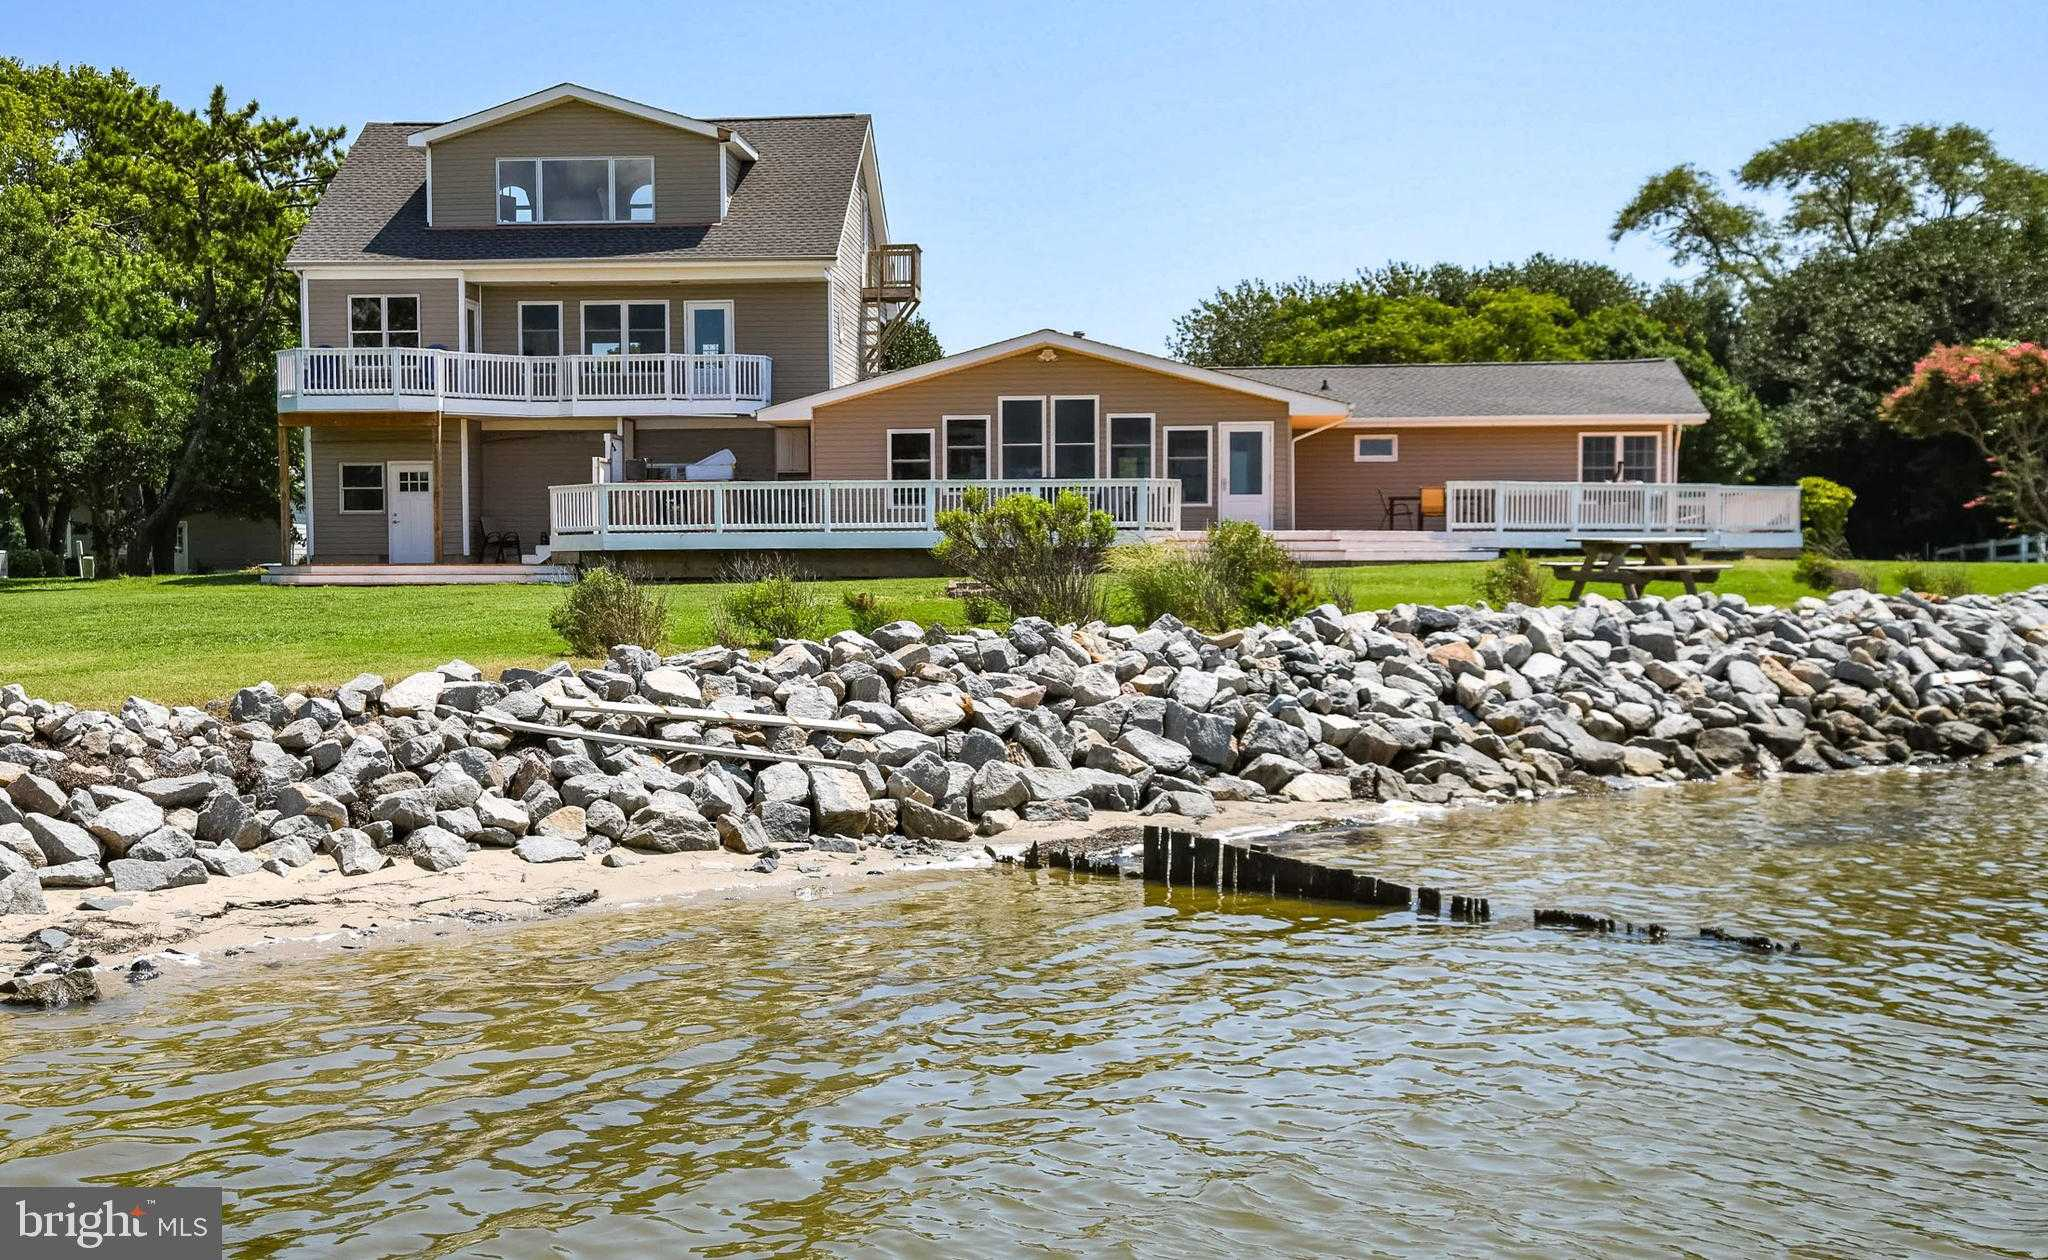 $690,000 - 4Br/3Ba -  for Sale in South Point Sub, Berlin